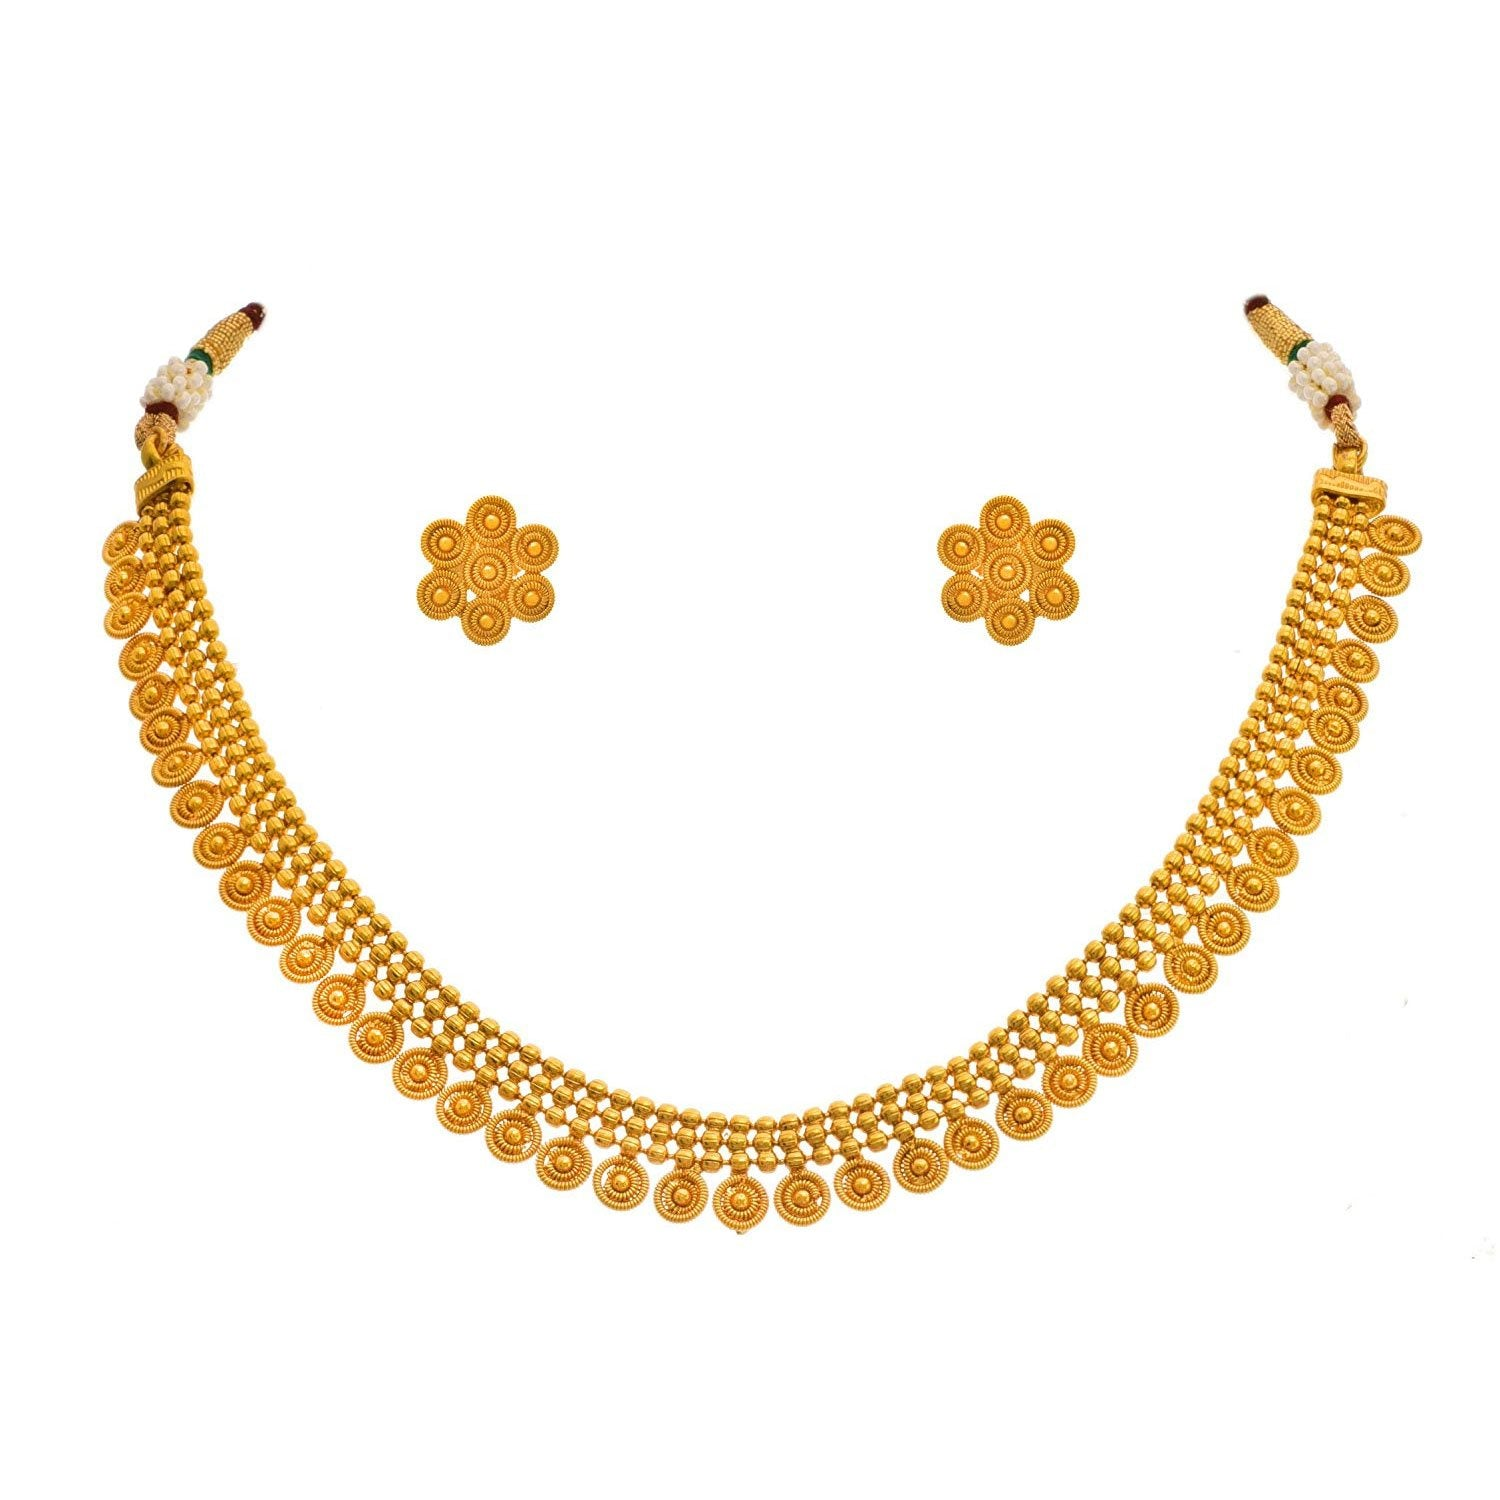 JFL - Traditional Ethnic One Gram Gold Plated Designer Necklace Set for Women.